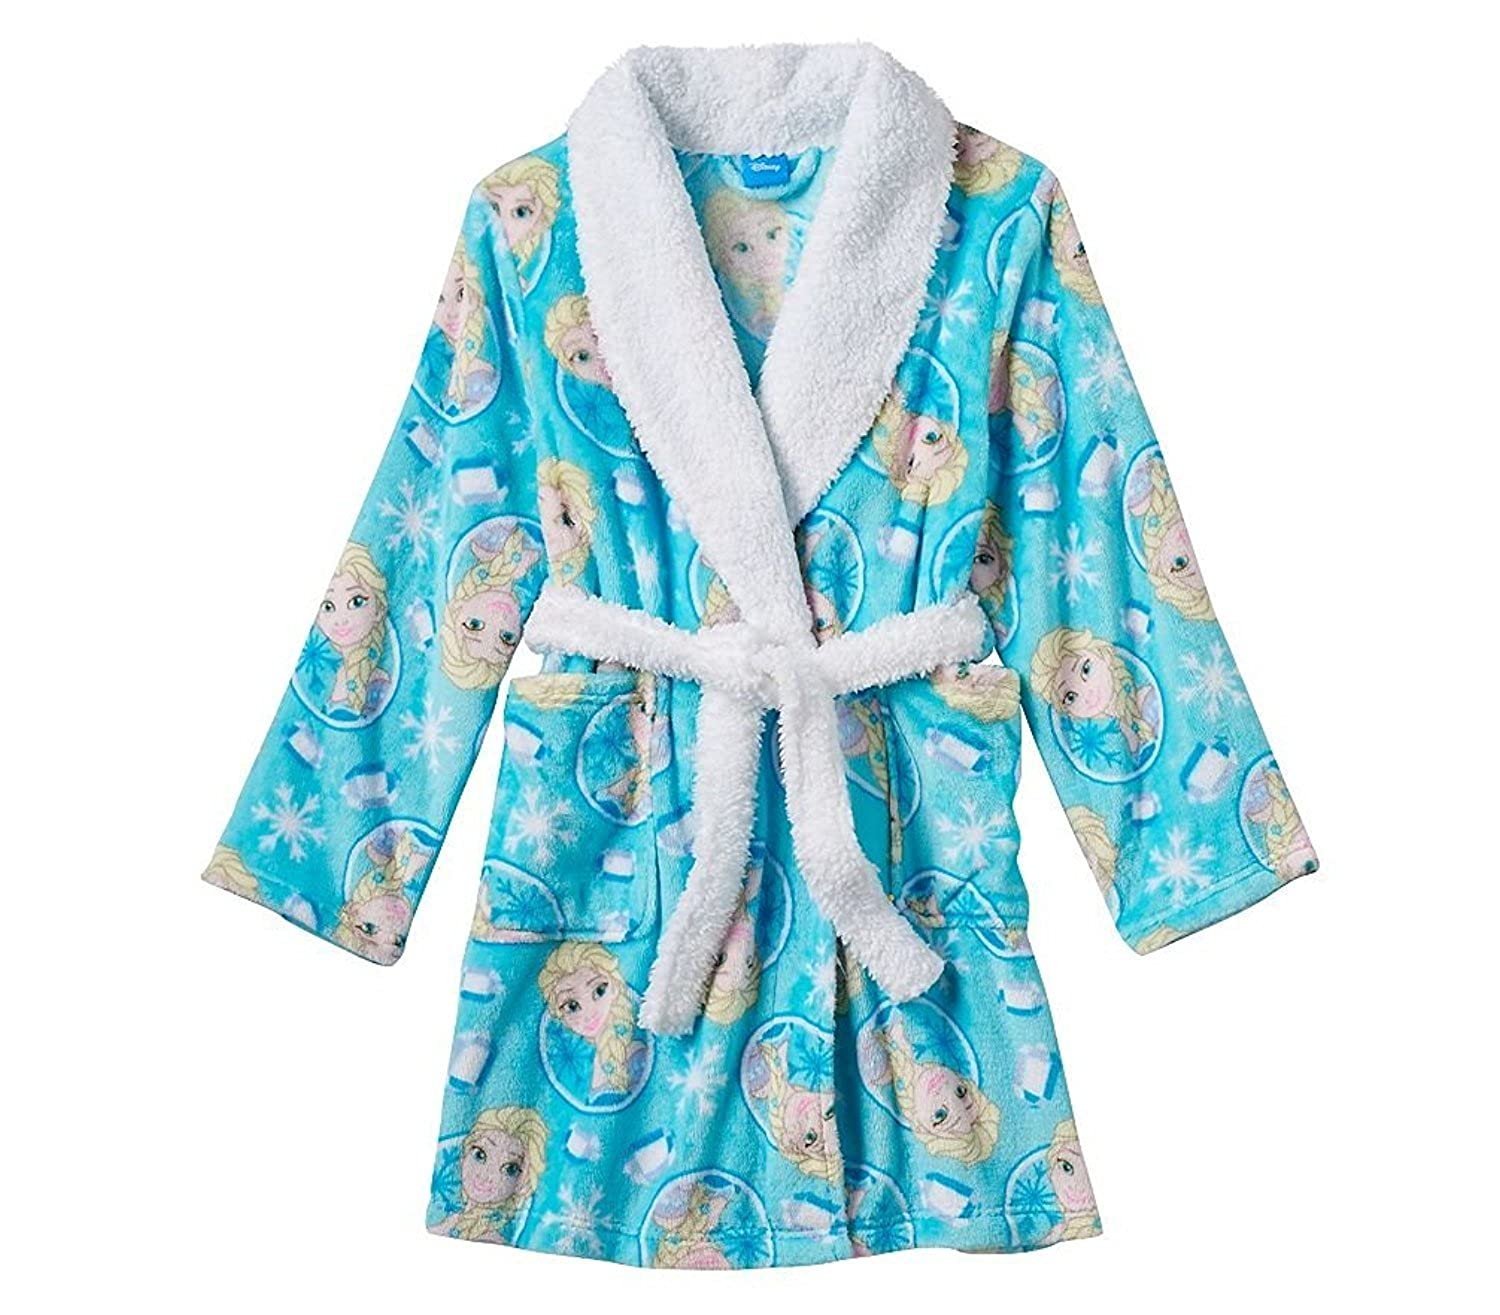 Disney Frozen Bathrobe Sherpa Collar Image 1